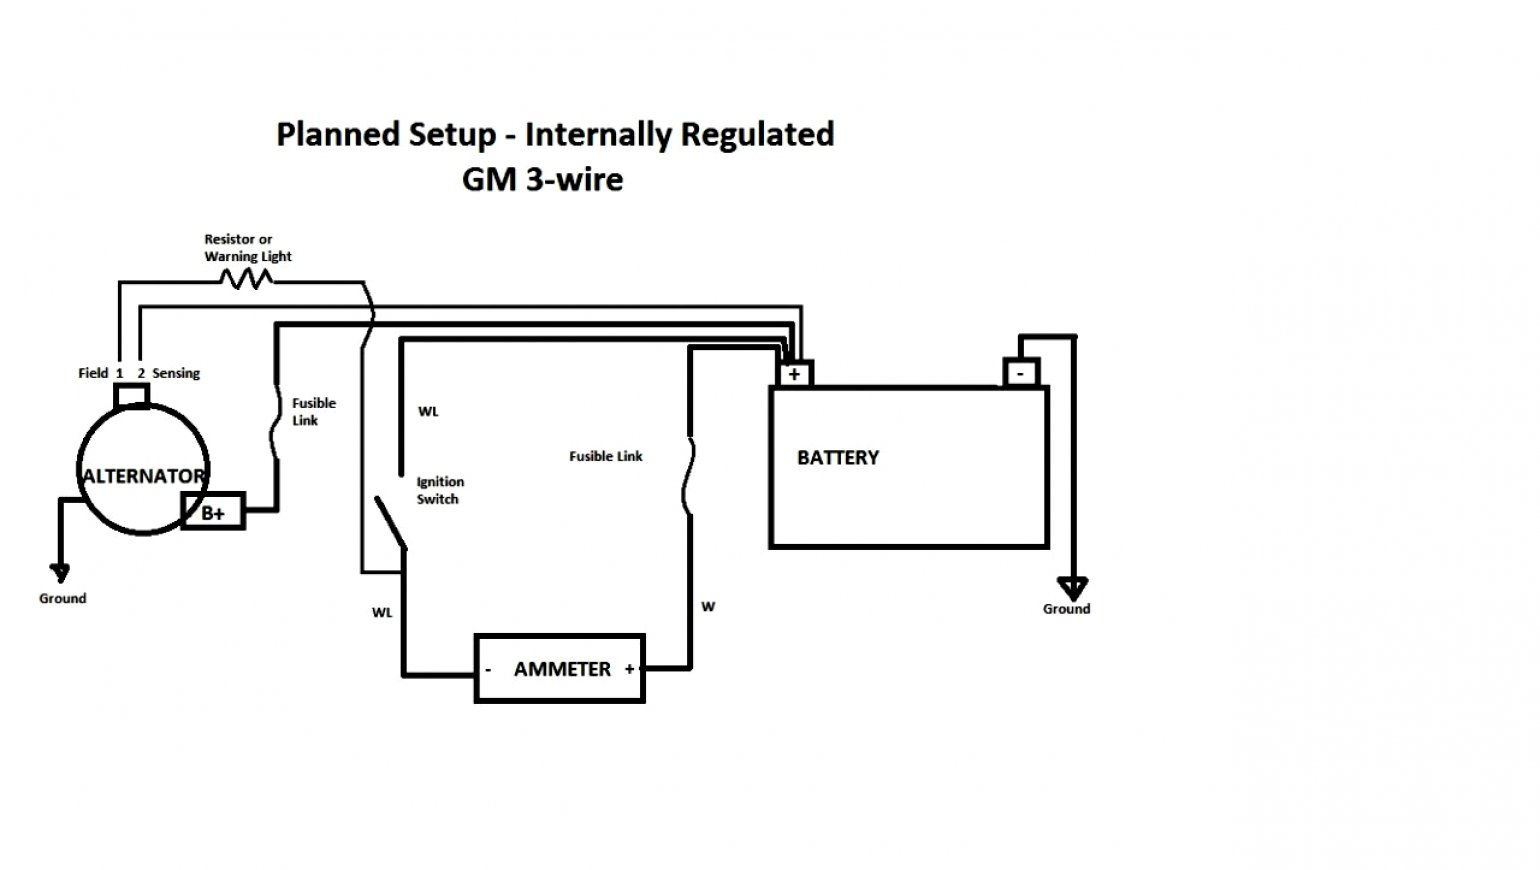 Gm 3 1 Wiring | Wiring Diagram - 2 Wire Alternator Wiring Diagram